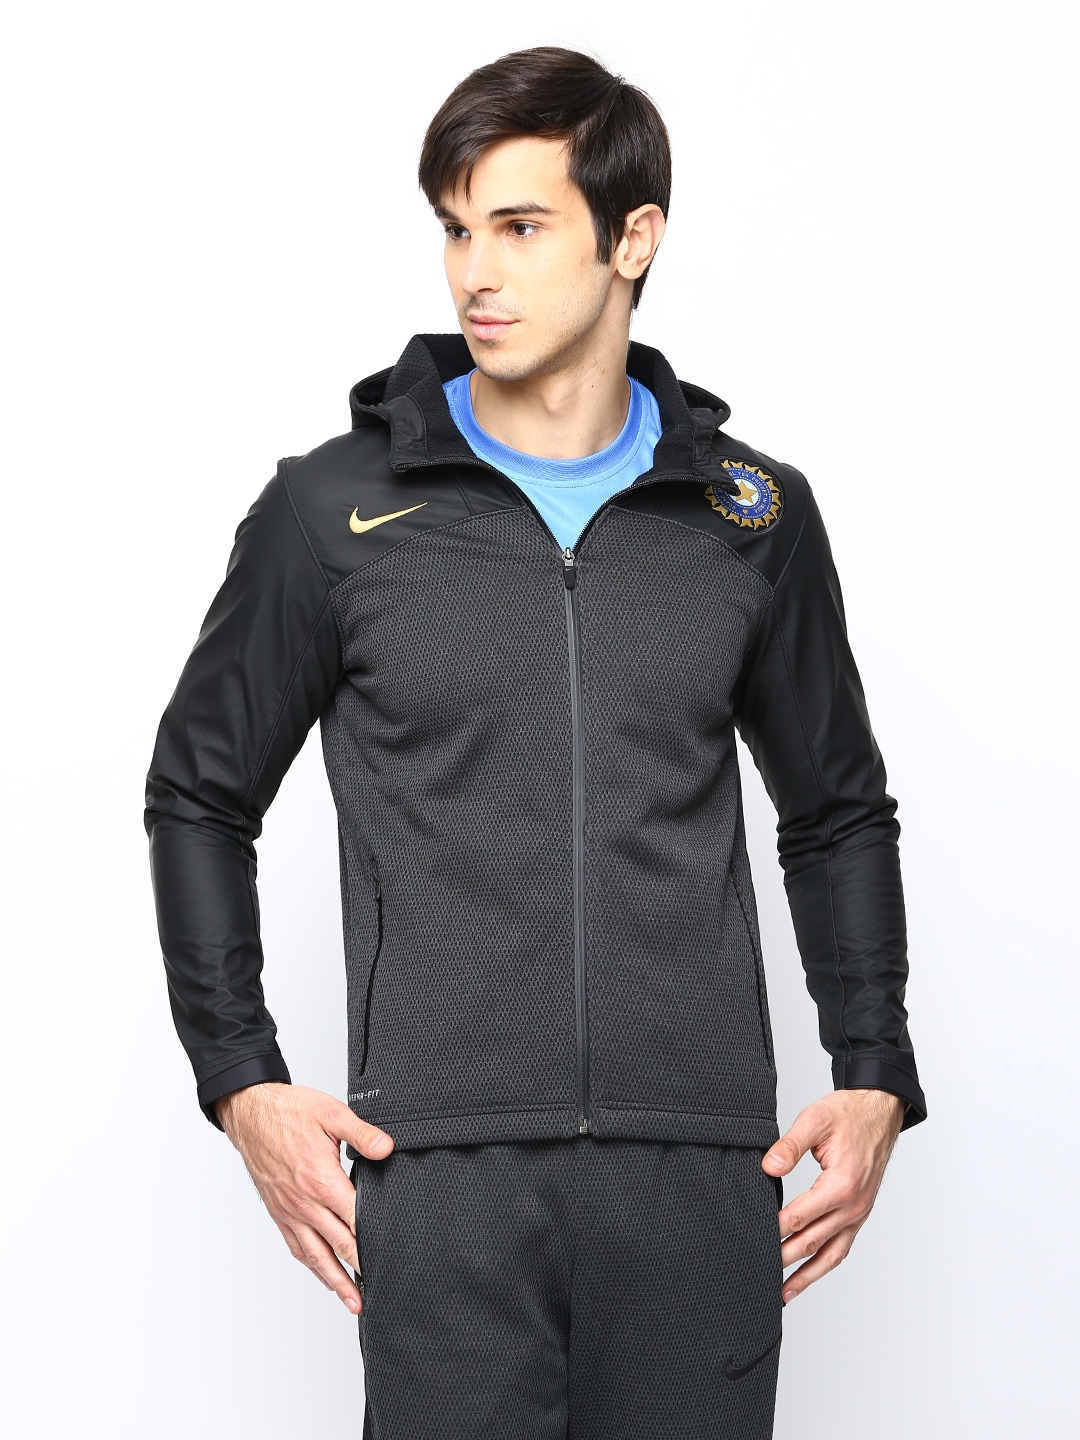 25af9c299a8e Nike 703079-010 Jackets - Best Price in India